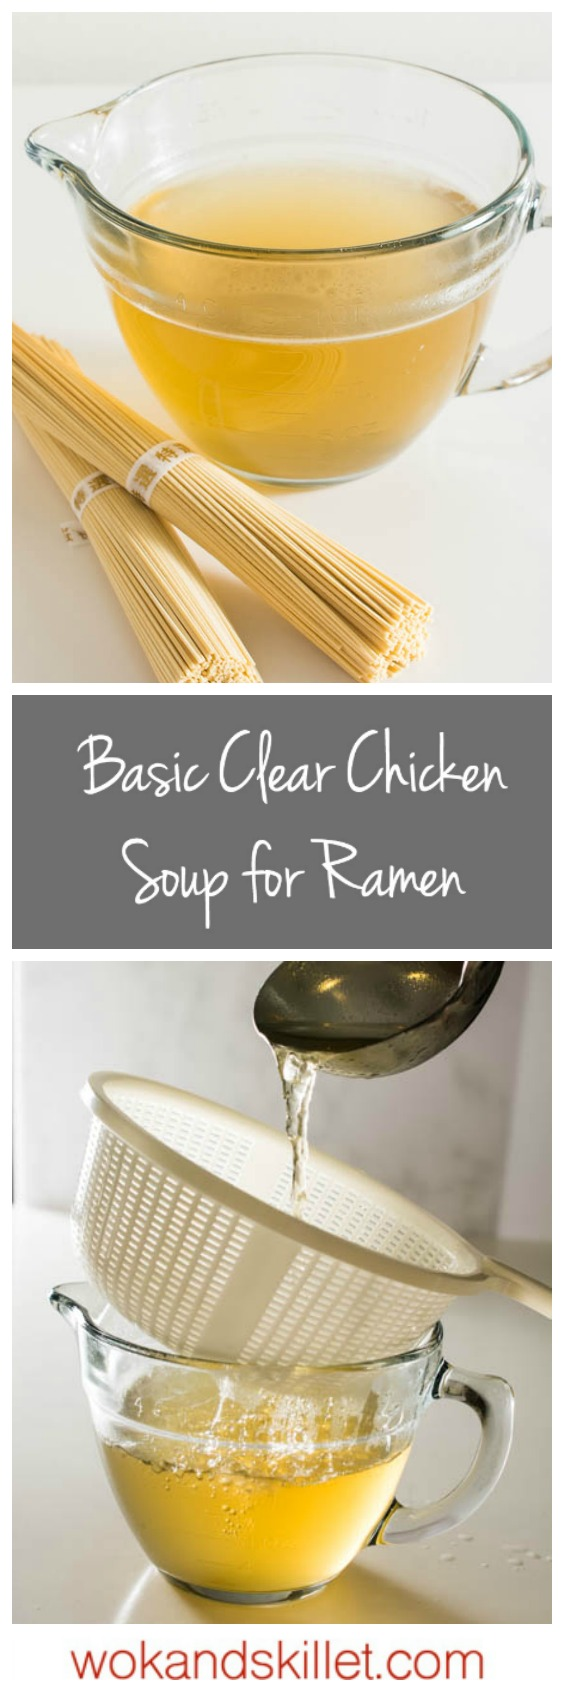 A good broth such as this Basic Clear Chicken Soup paired with a good tare sets the foundation for a great bowl of ramen.